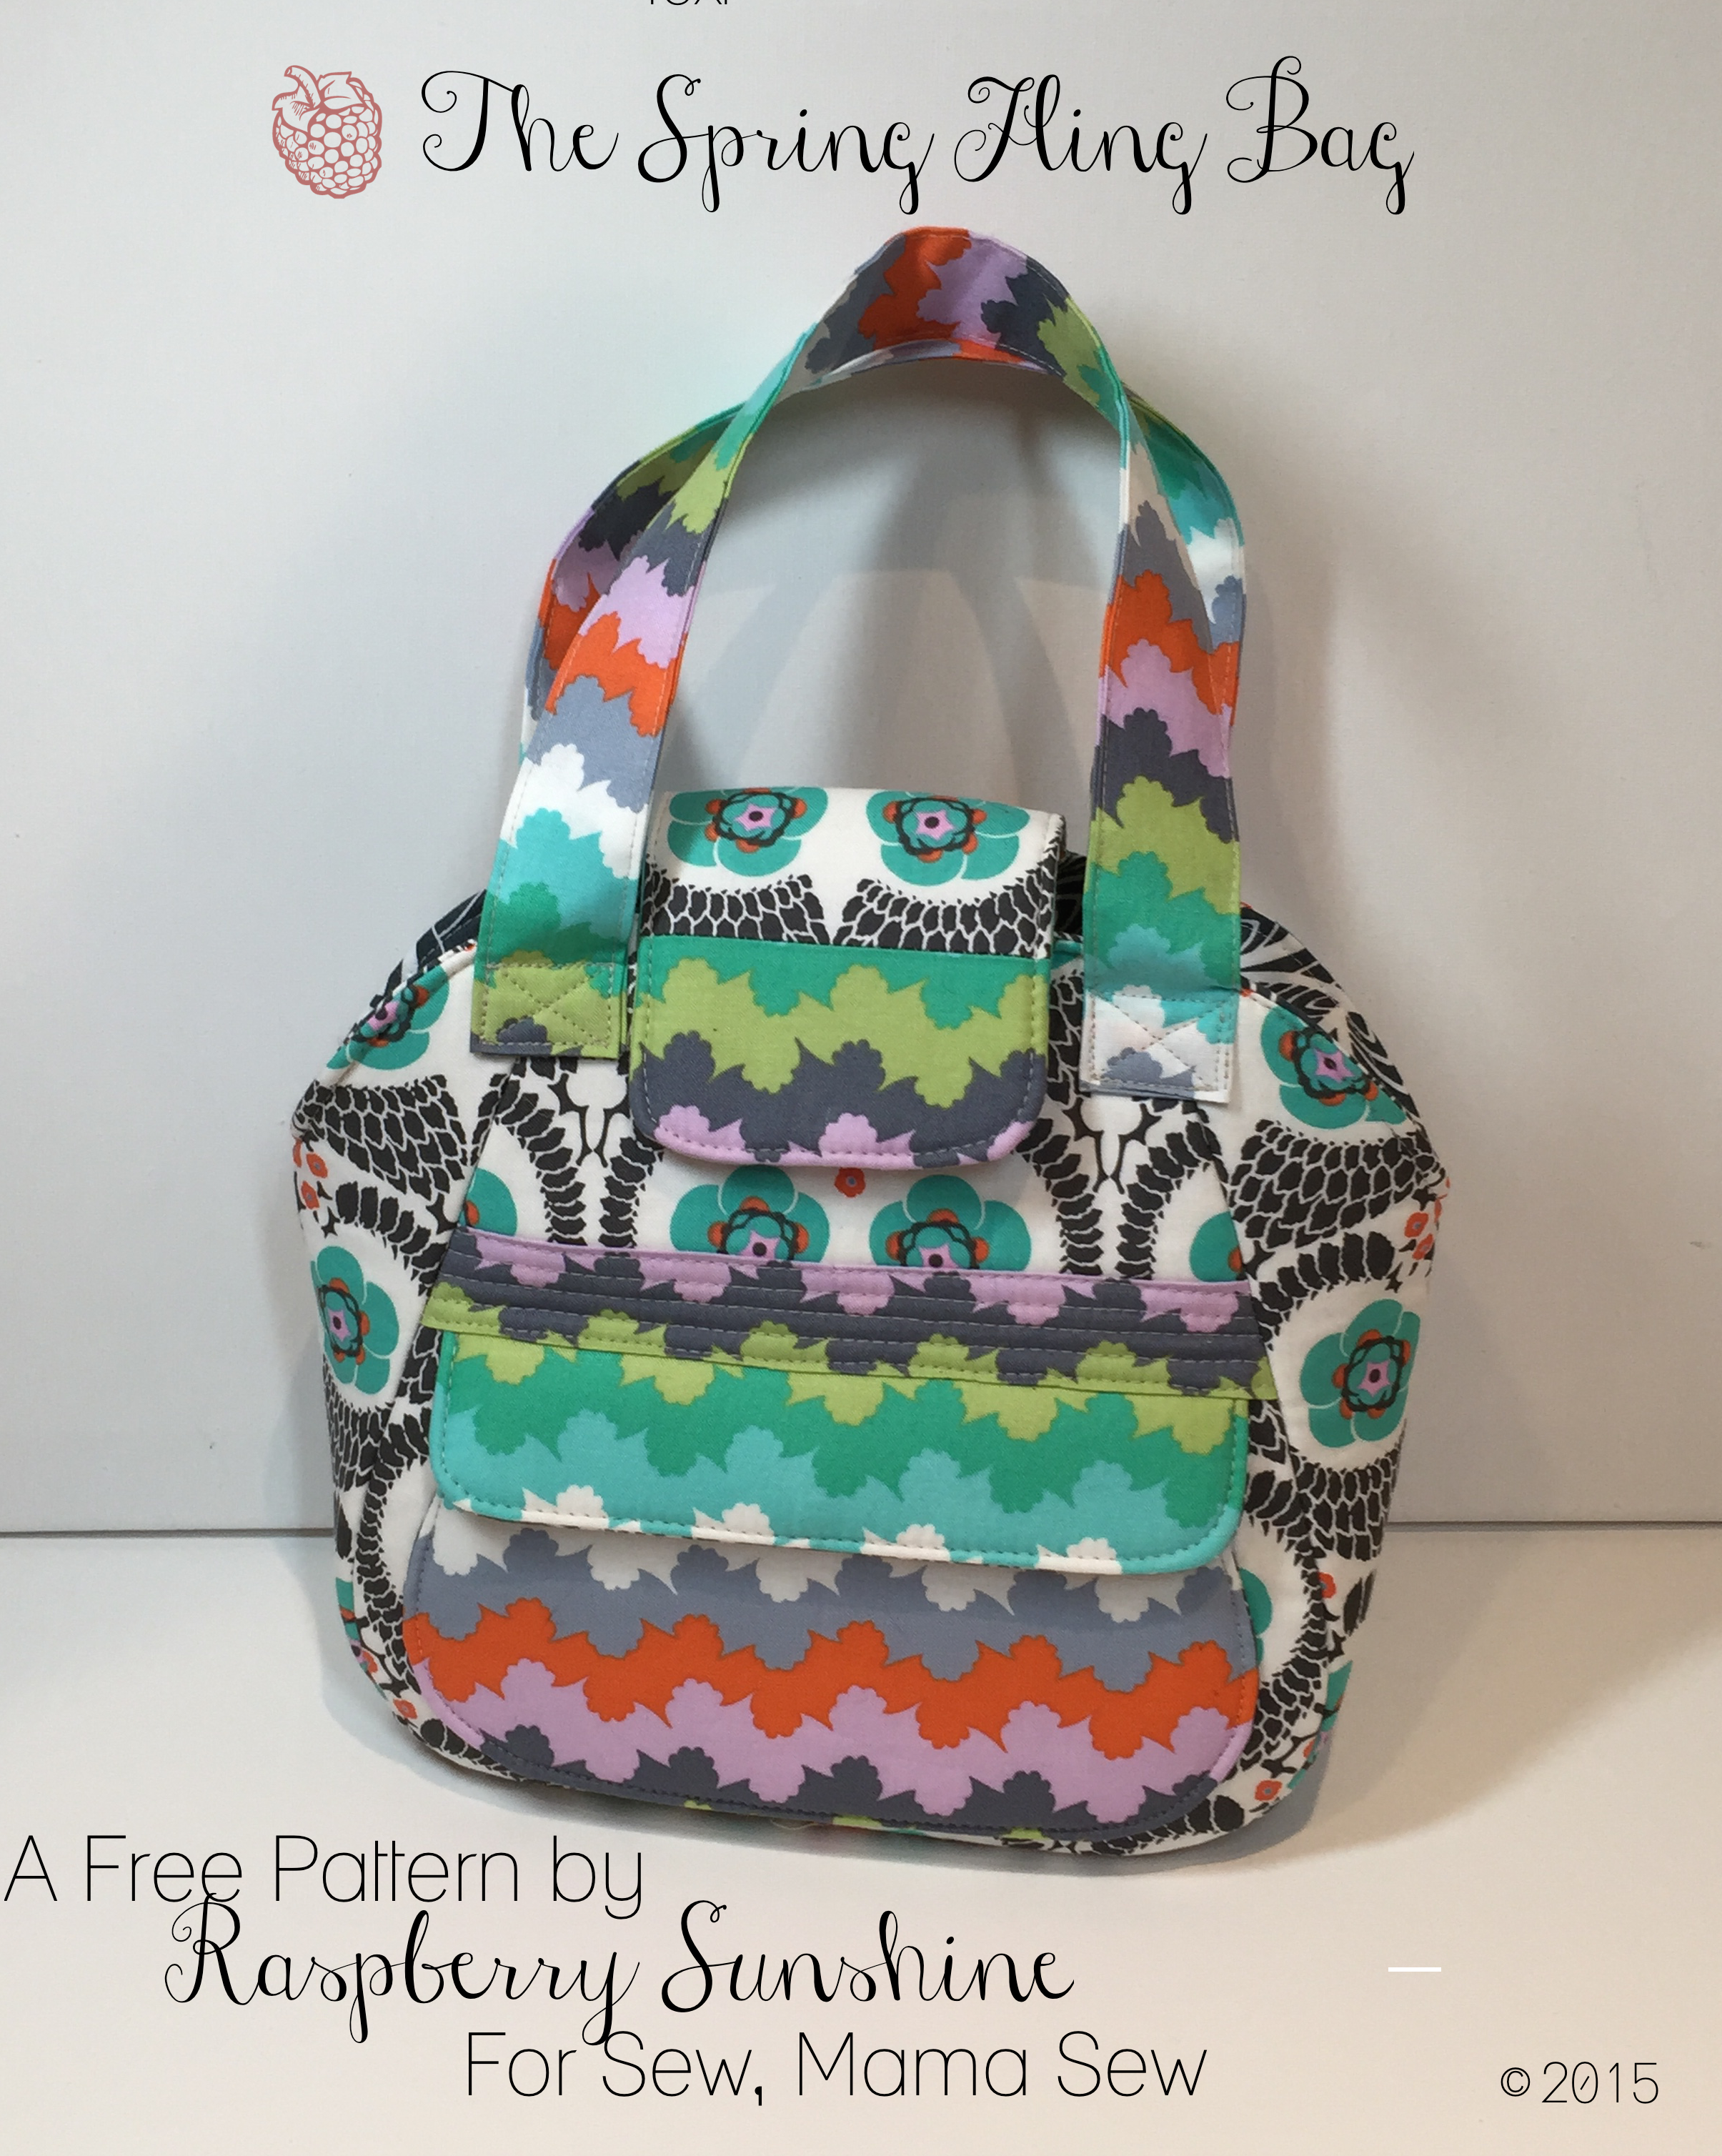 Free pattern the spring fling bag raspberry sunshine i am so excited to share with you a free new pattern i created for sew mama sew ive been giving sneak peeks on ig for a few weeks jeuxipadfo Image collections